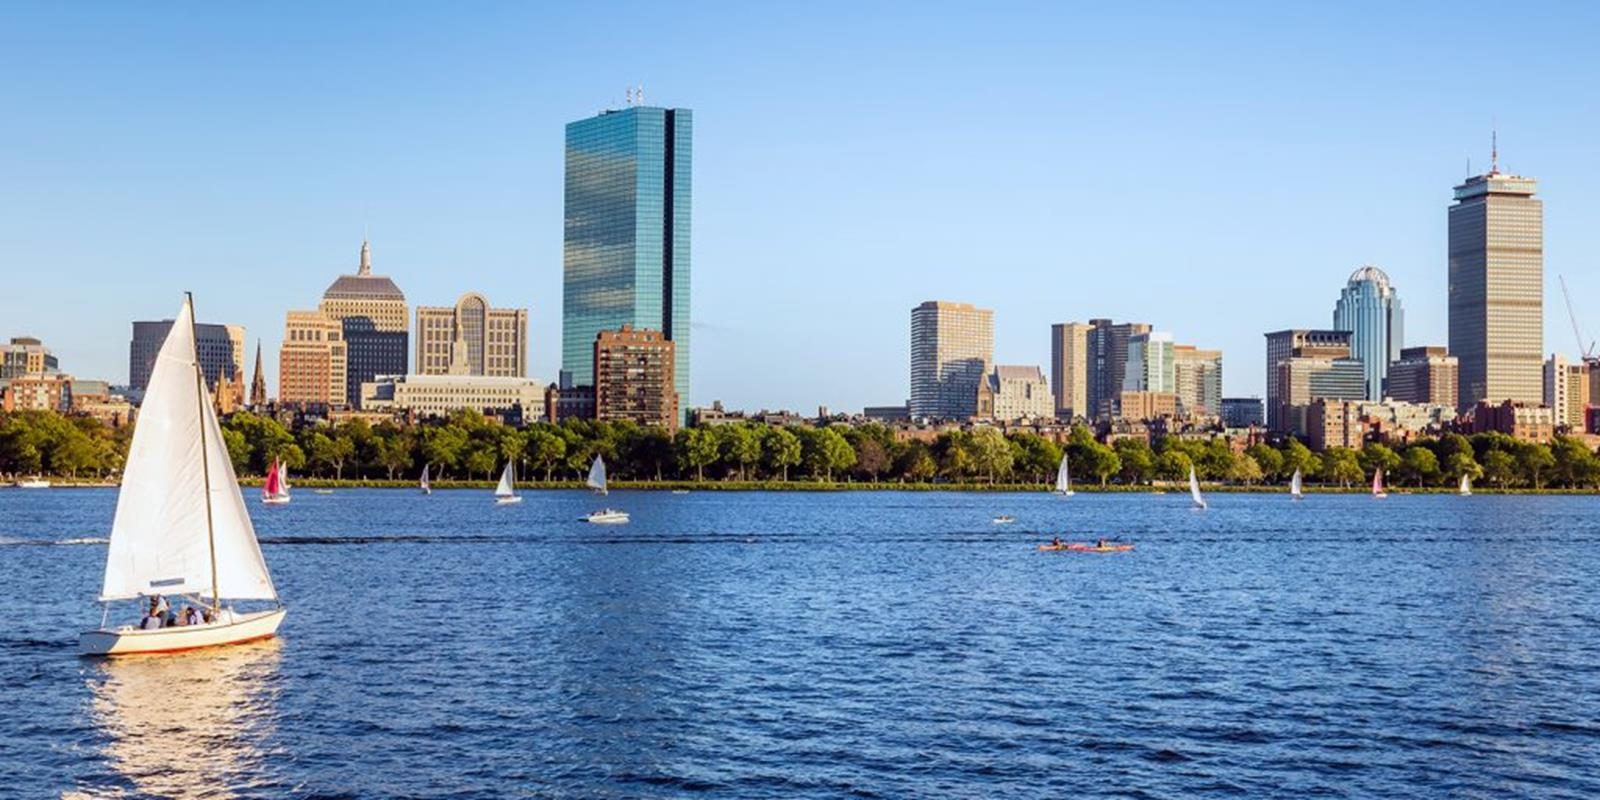 Revolution, Robotics and Research: Planning a STEM Adventure in Boston